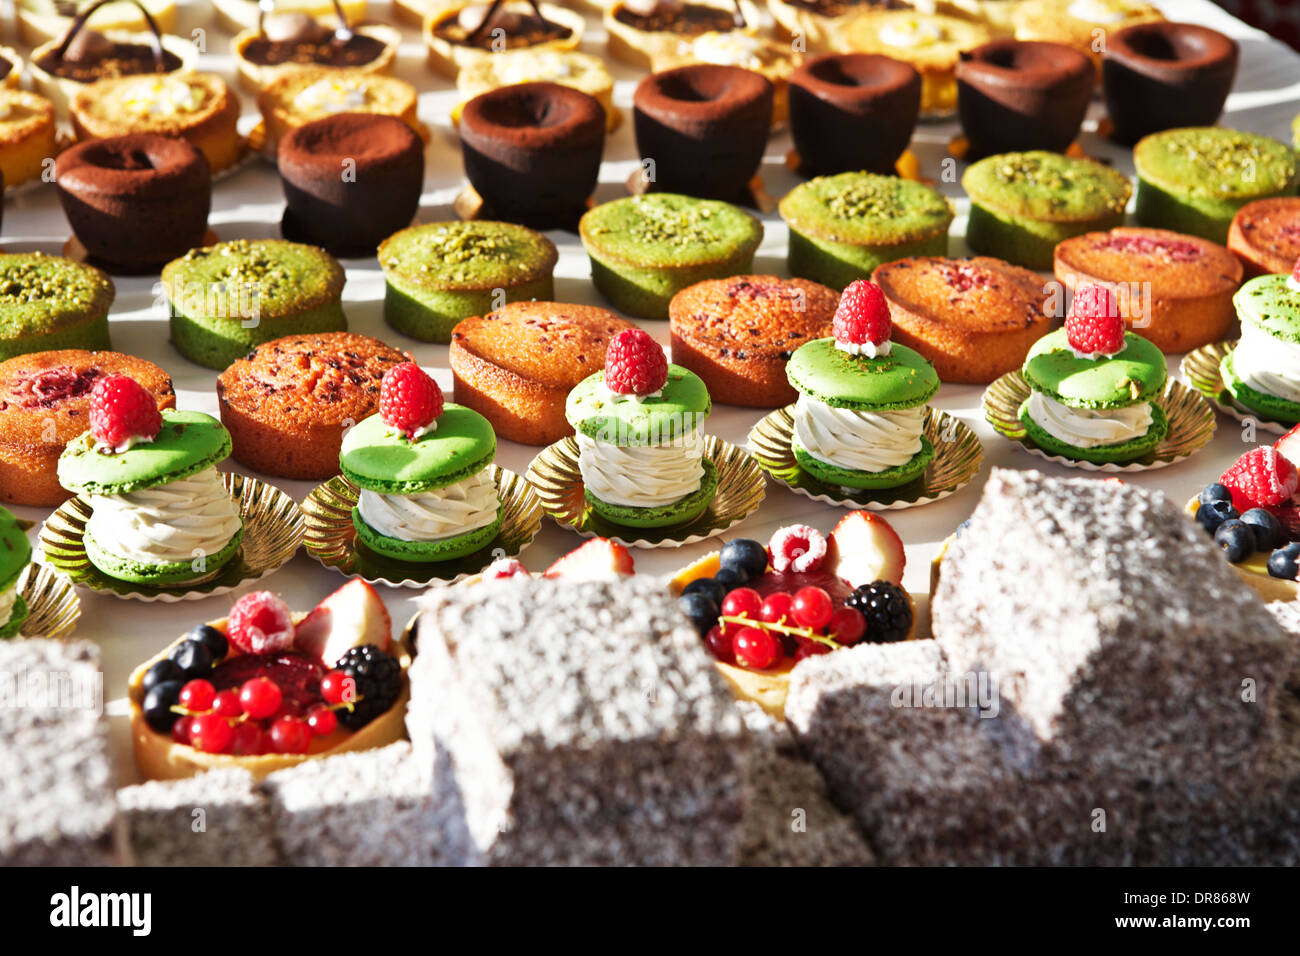 Traditional Parisian patisserie, confectionery, cake, dessert - Stock Image